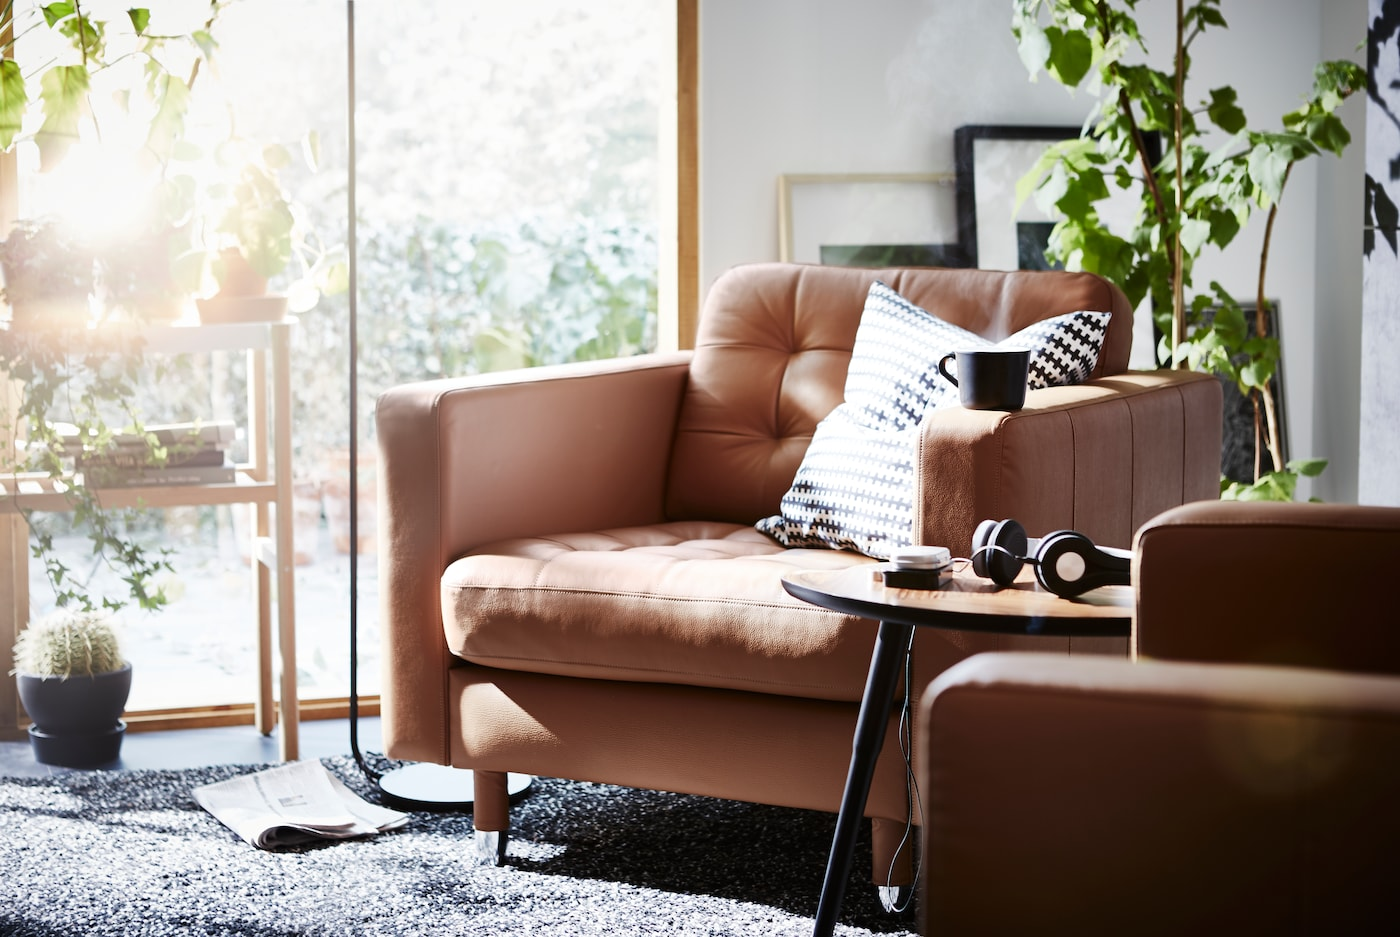 A living room with armchairs and a LANDSKRONAarmchair around a coffee table, with a large window to the right of the sofa.